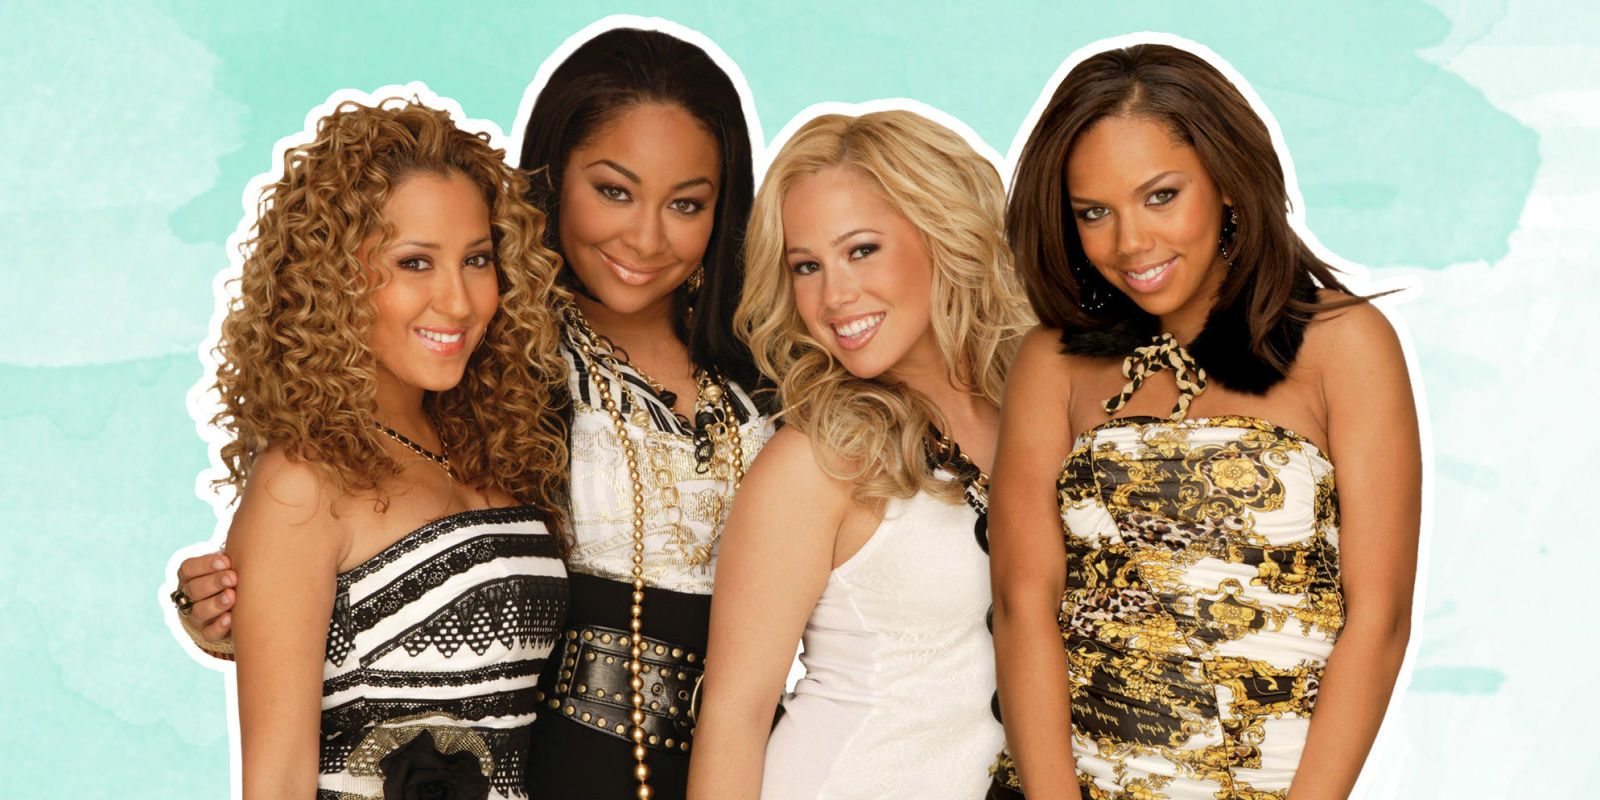 Wallpaper Cheetah Girls There Was A Mini Quot Cheetah Girls Quot Reunion At One Of Their